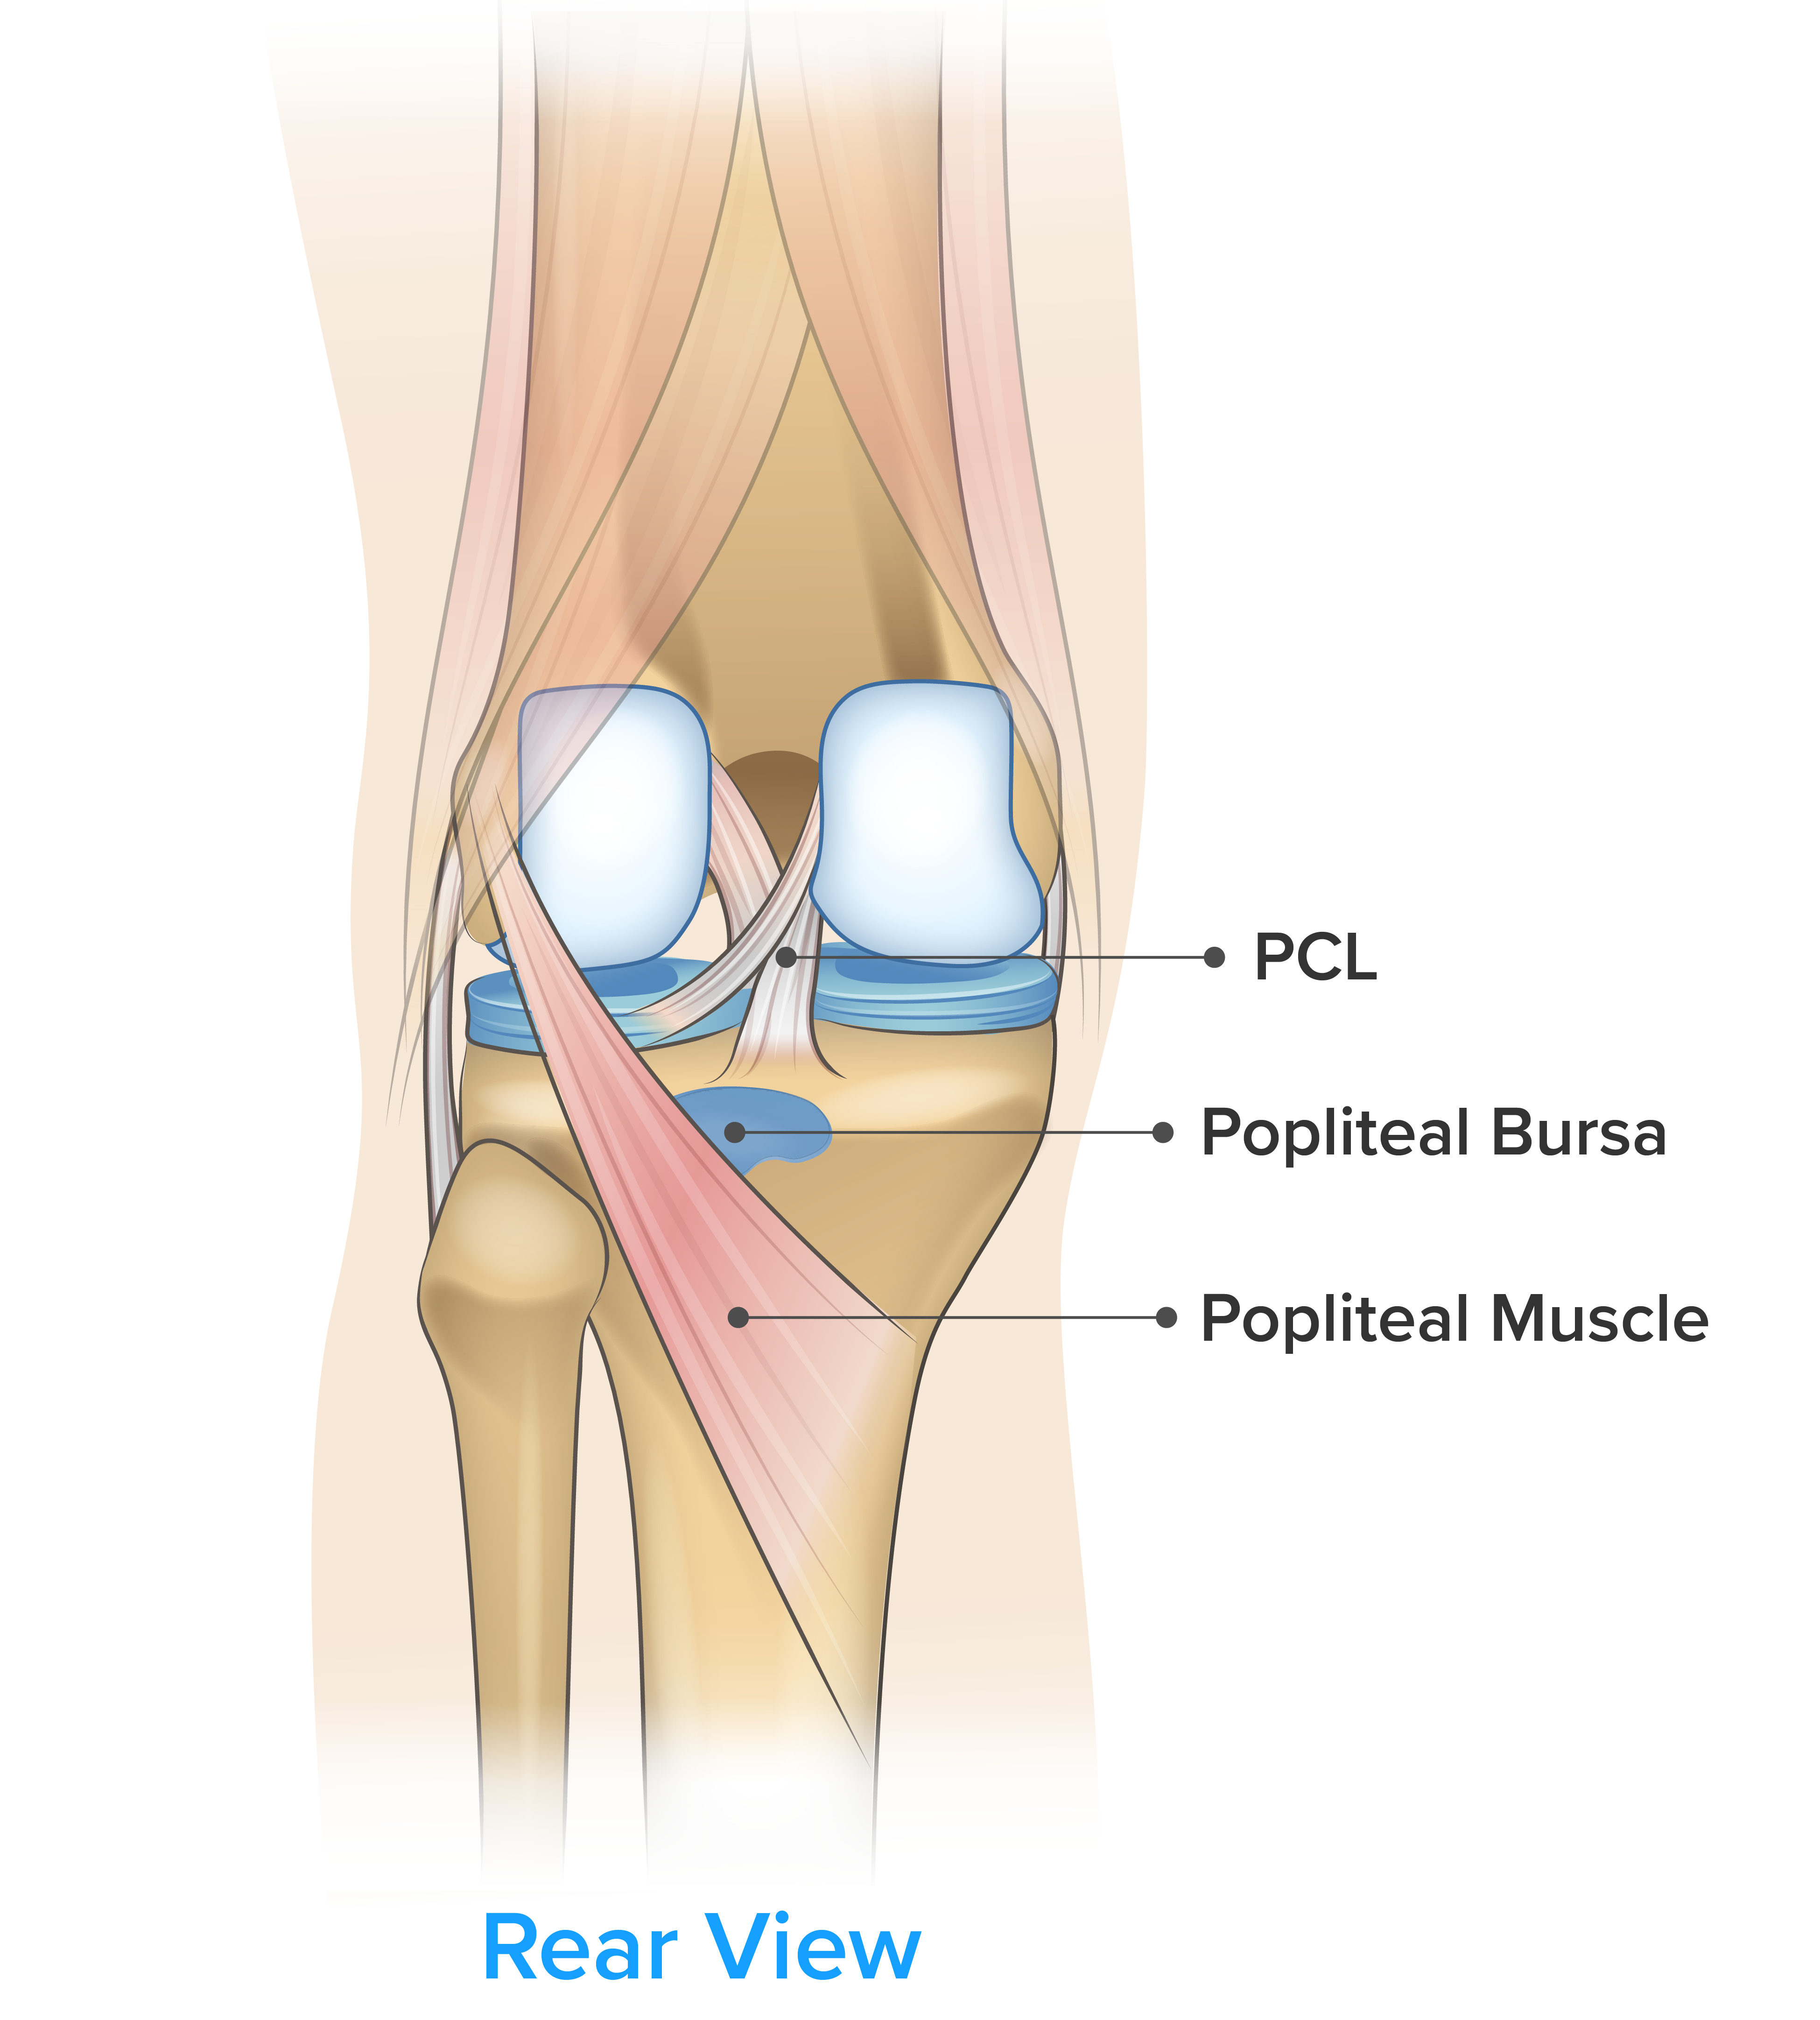 Traumatic Disorders of the Knee